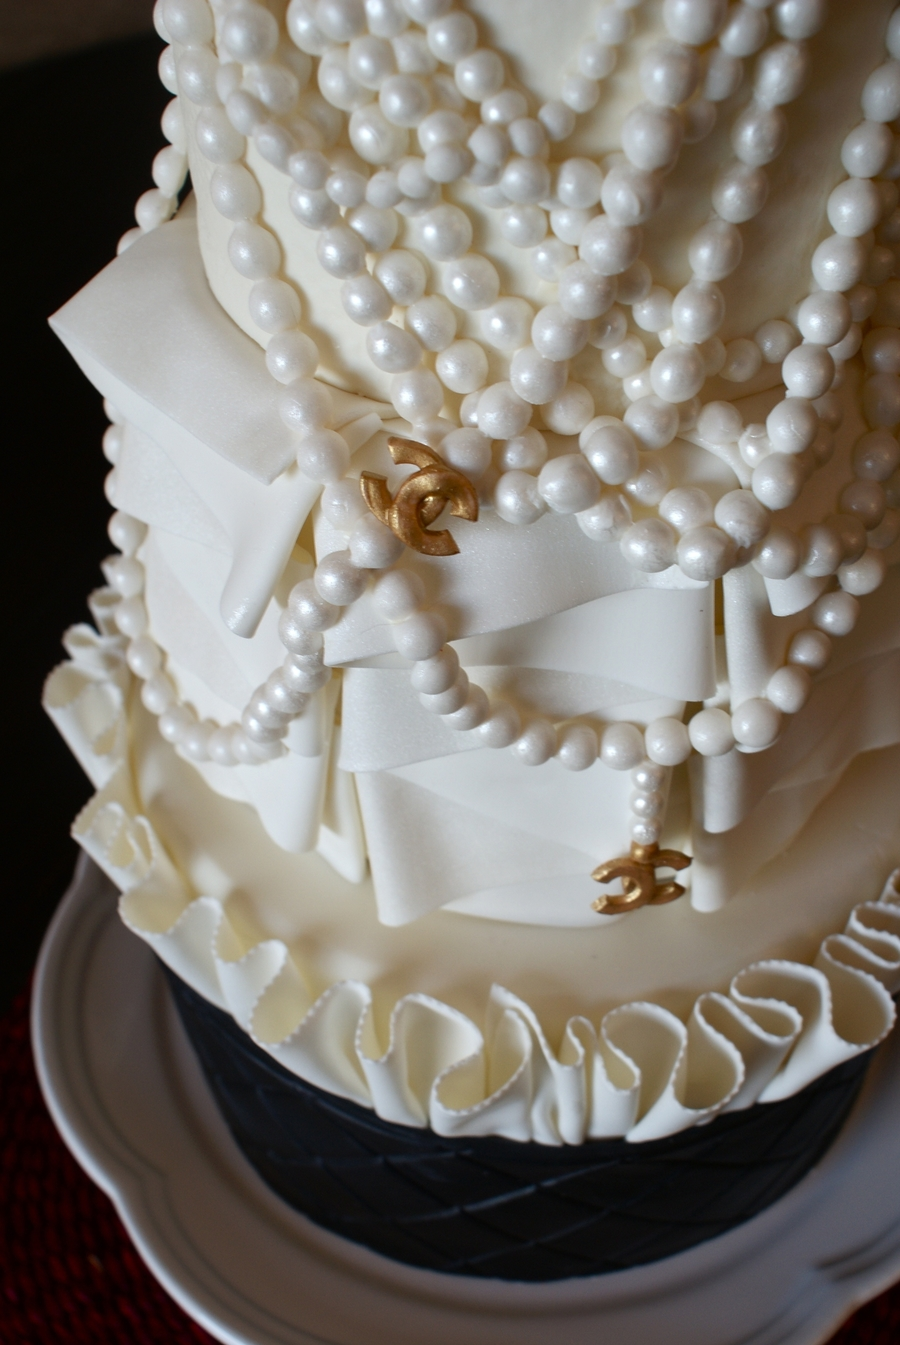 Chanel Inspired Birthday Cake - CakeCentral.com